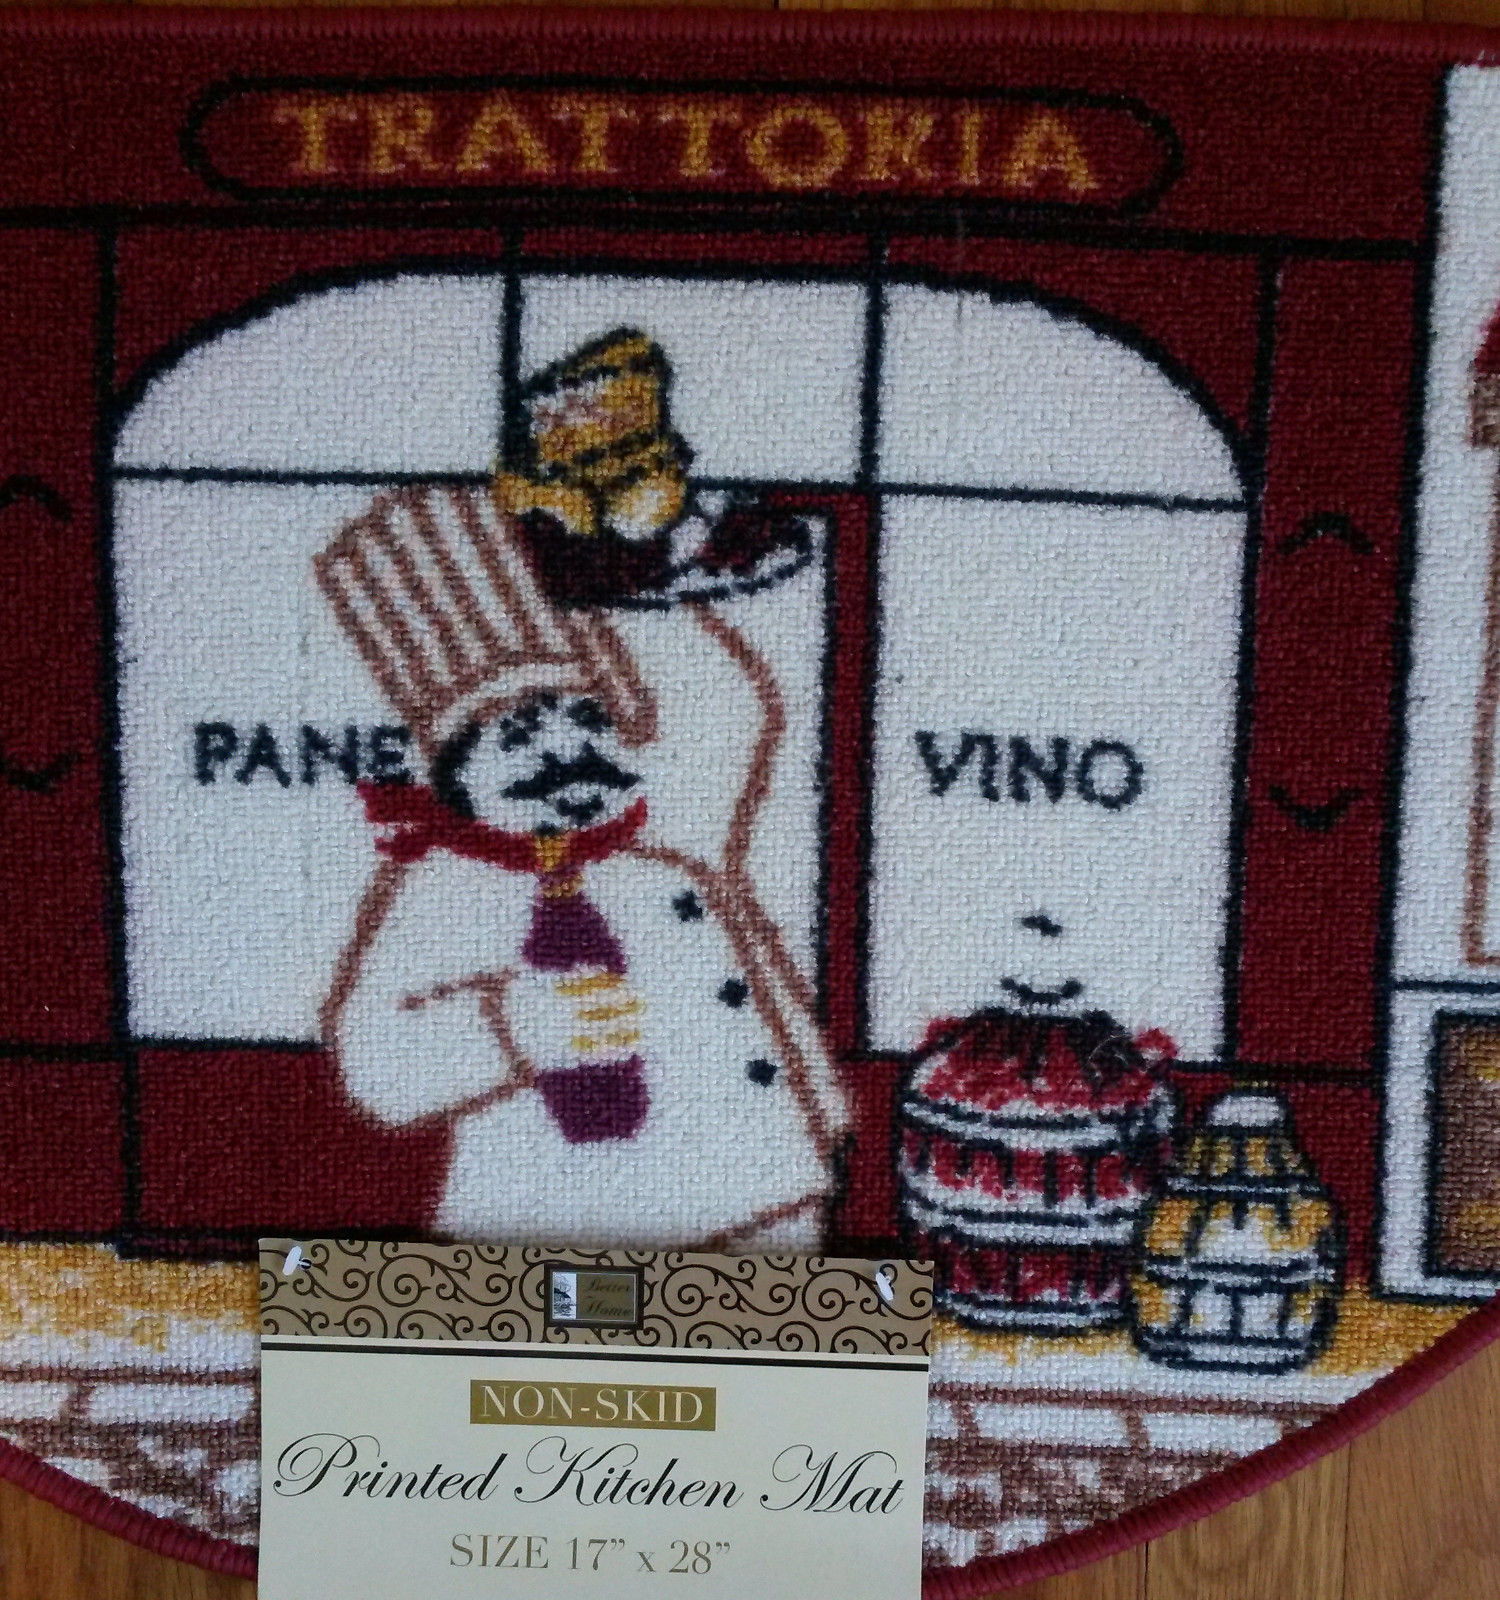 FAT CHEF KITCHEN RUG Pane Vino Italian Wine Decor Floor Slice Door Mat Red NEW